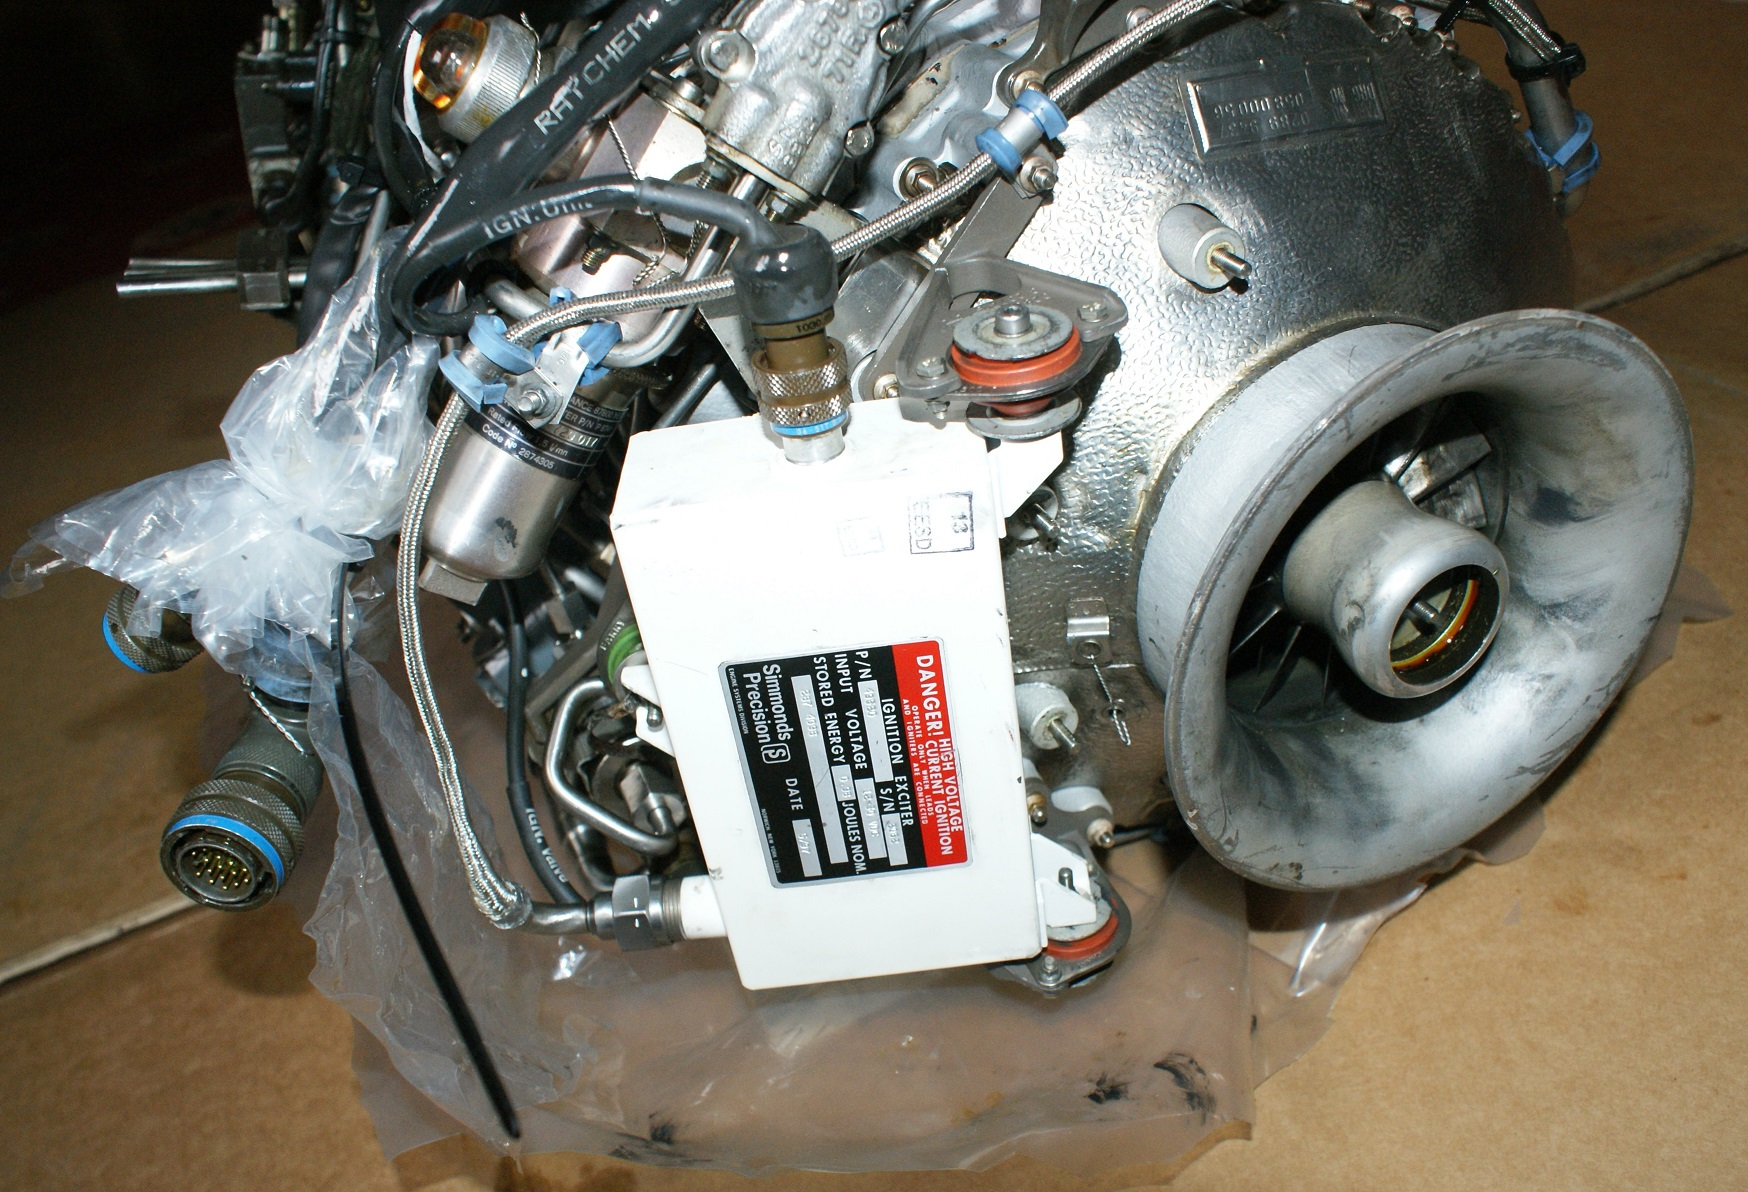 Close Up View Showing Intake & Ignition Unit